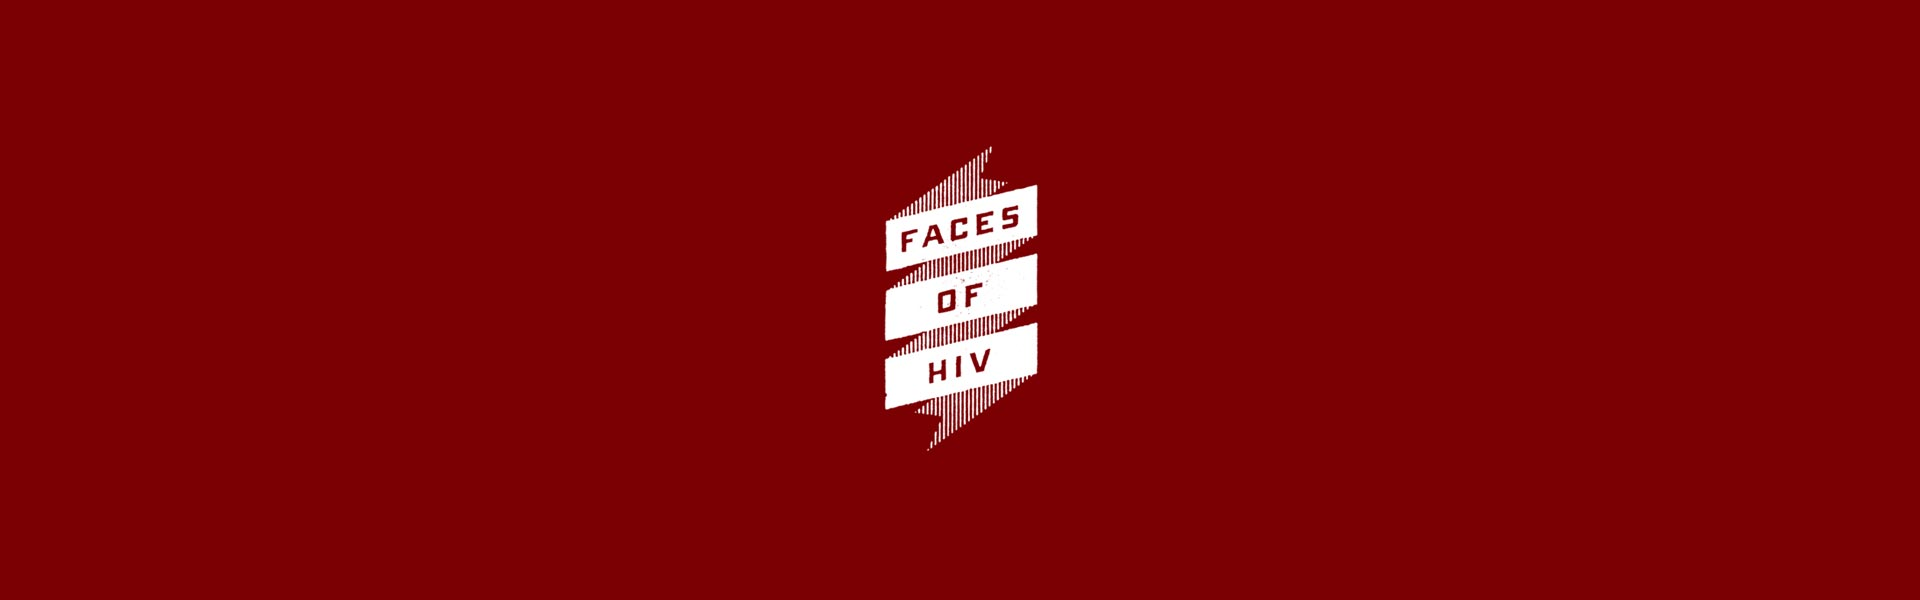 Florida Department of Health: Faces of HIV